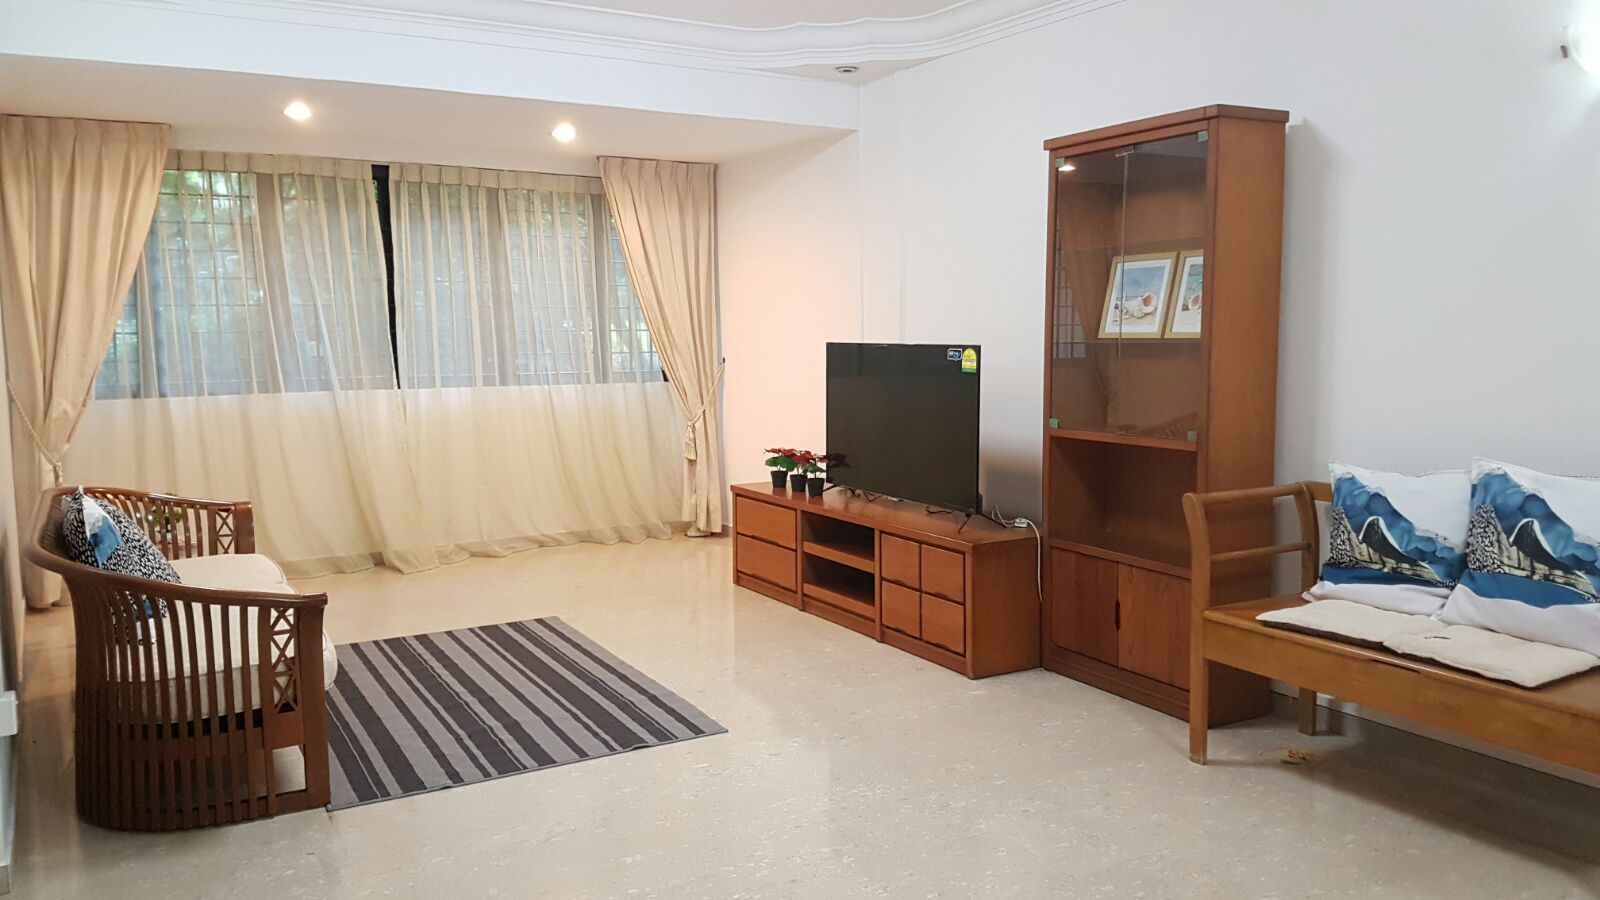 543 Serangoon North Avenue 3